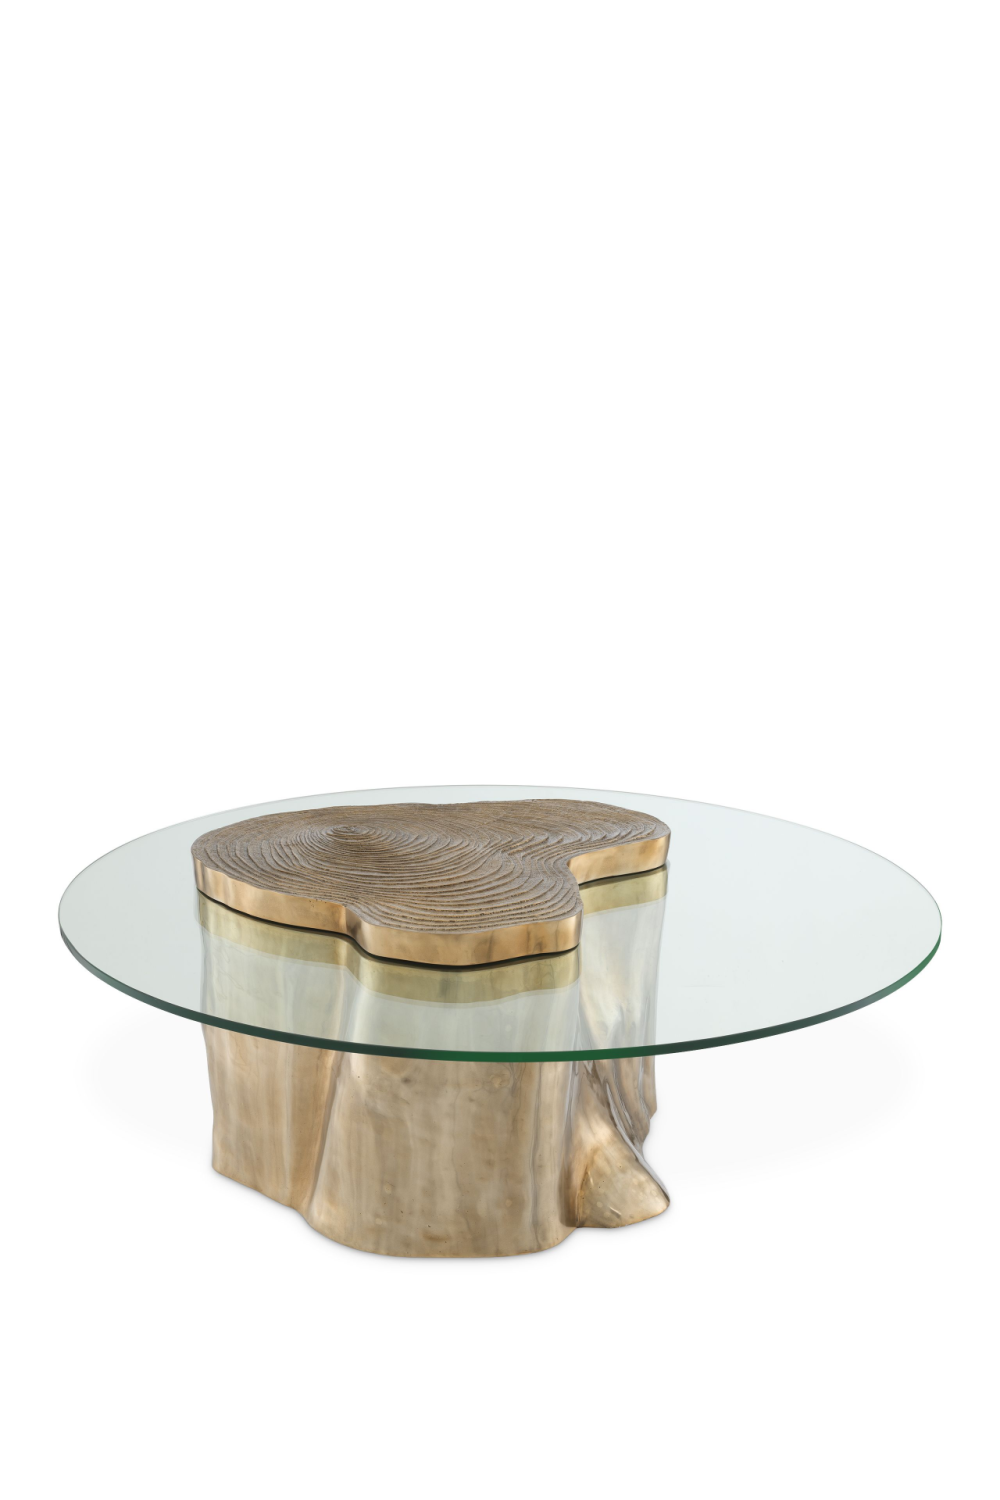 Gold Wood Stump Coffee Table | Eichholtz Urban | #1 Eichholtz Retailer